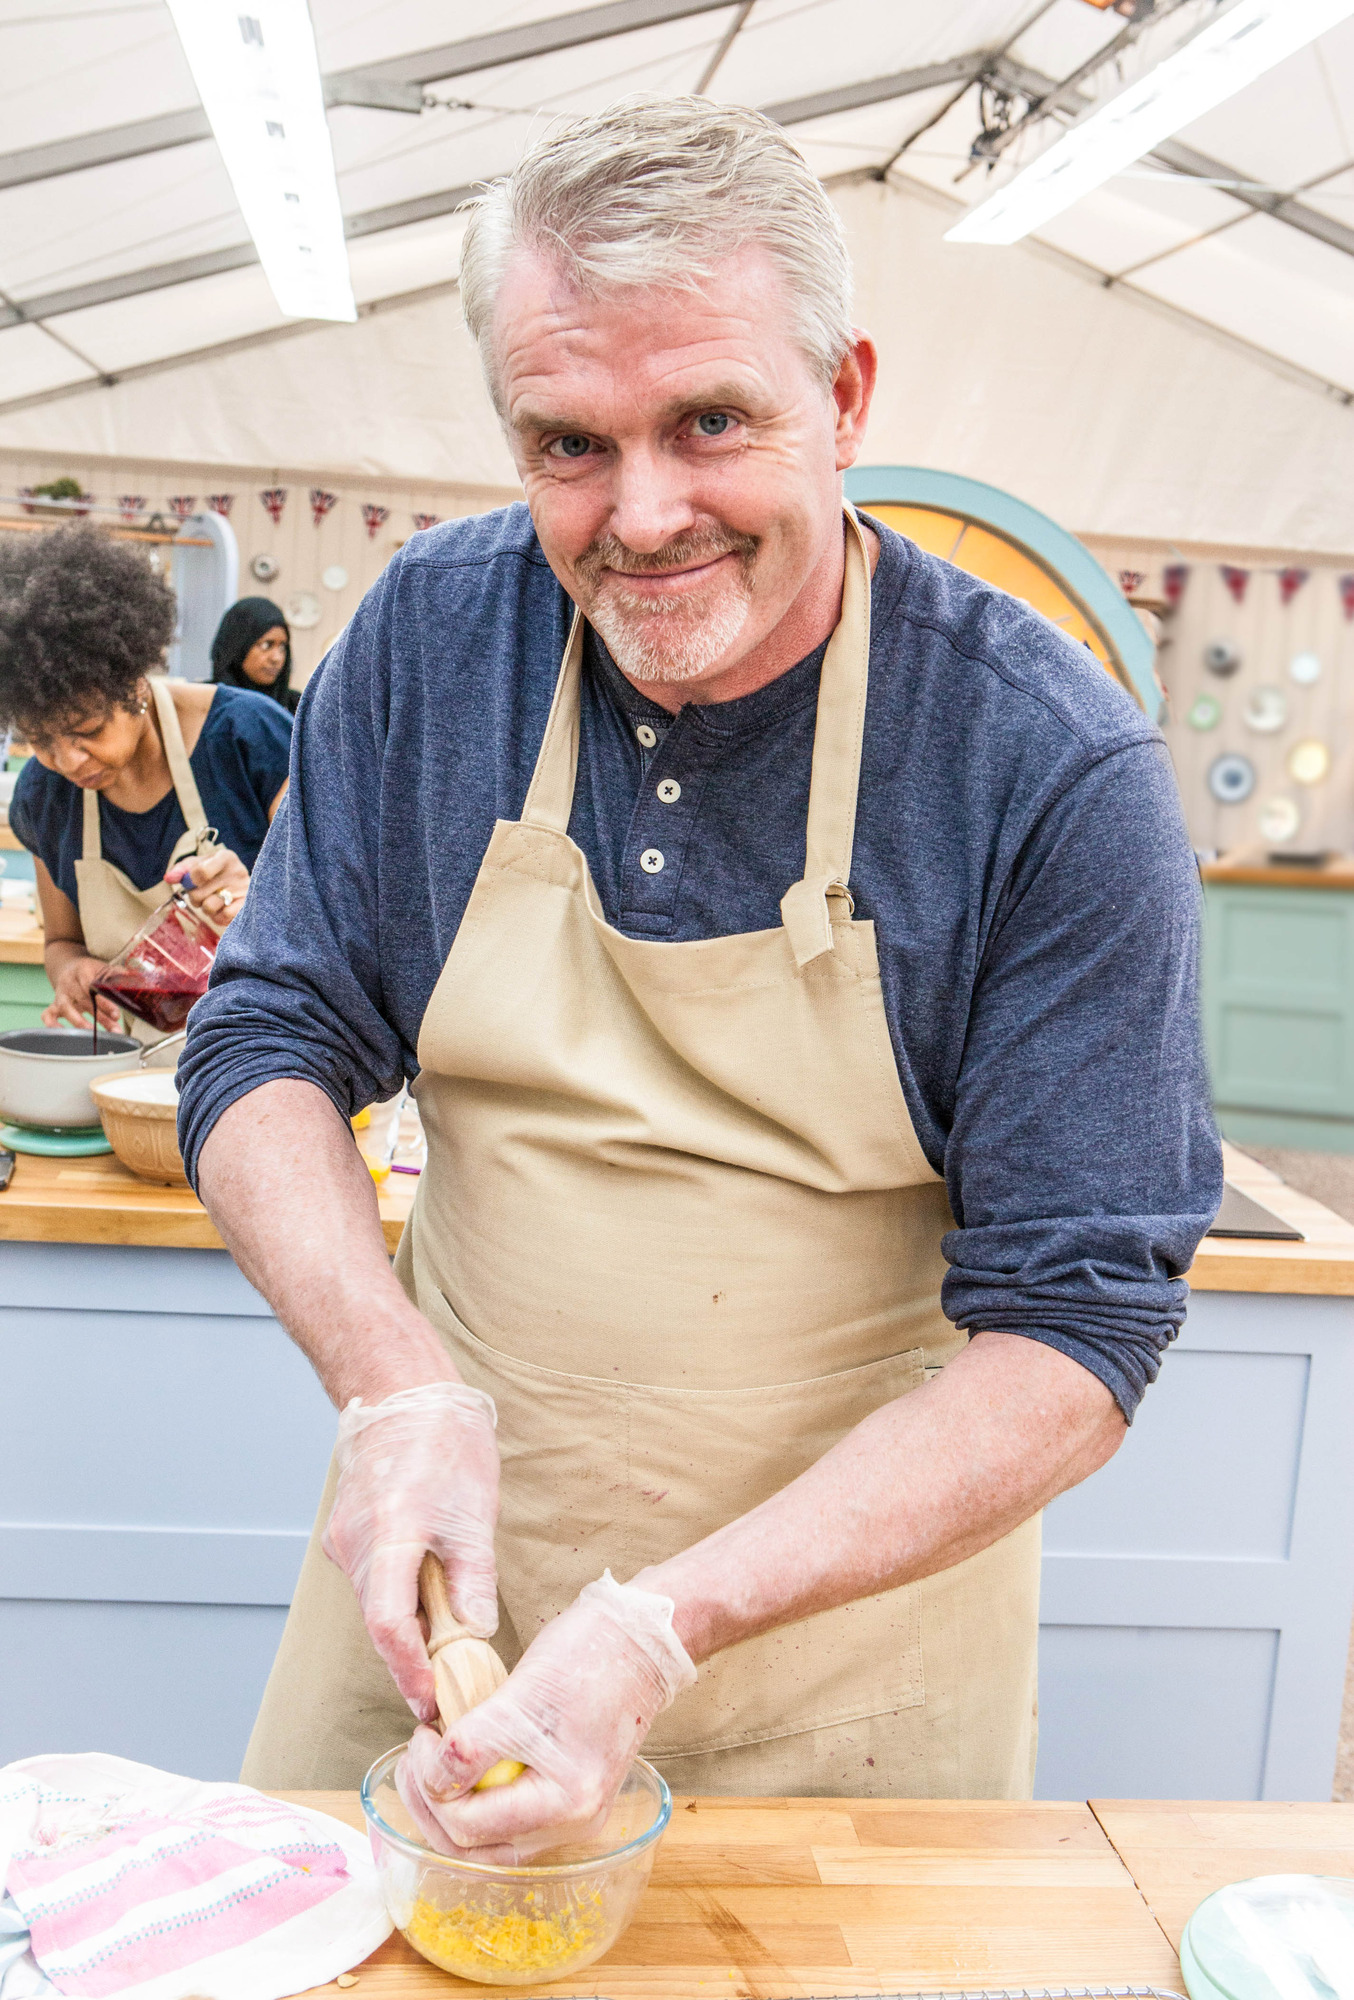 Paul from The Great British Bake Off